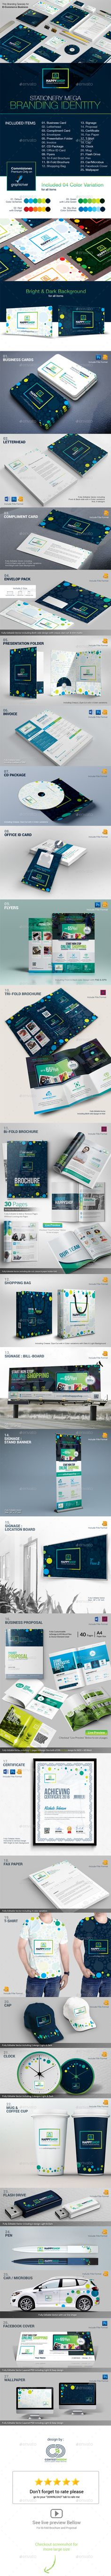 E-Commerce Business Branding Identity